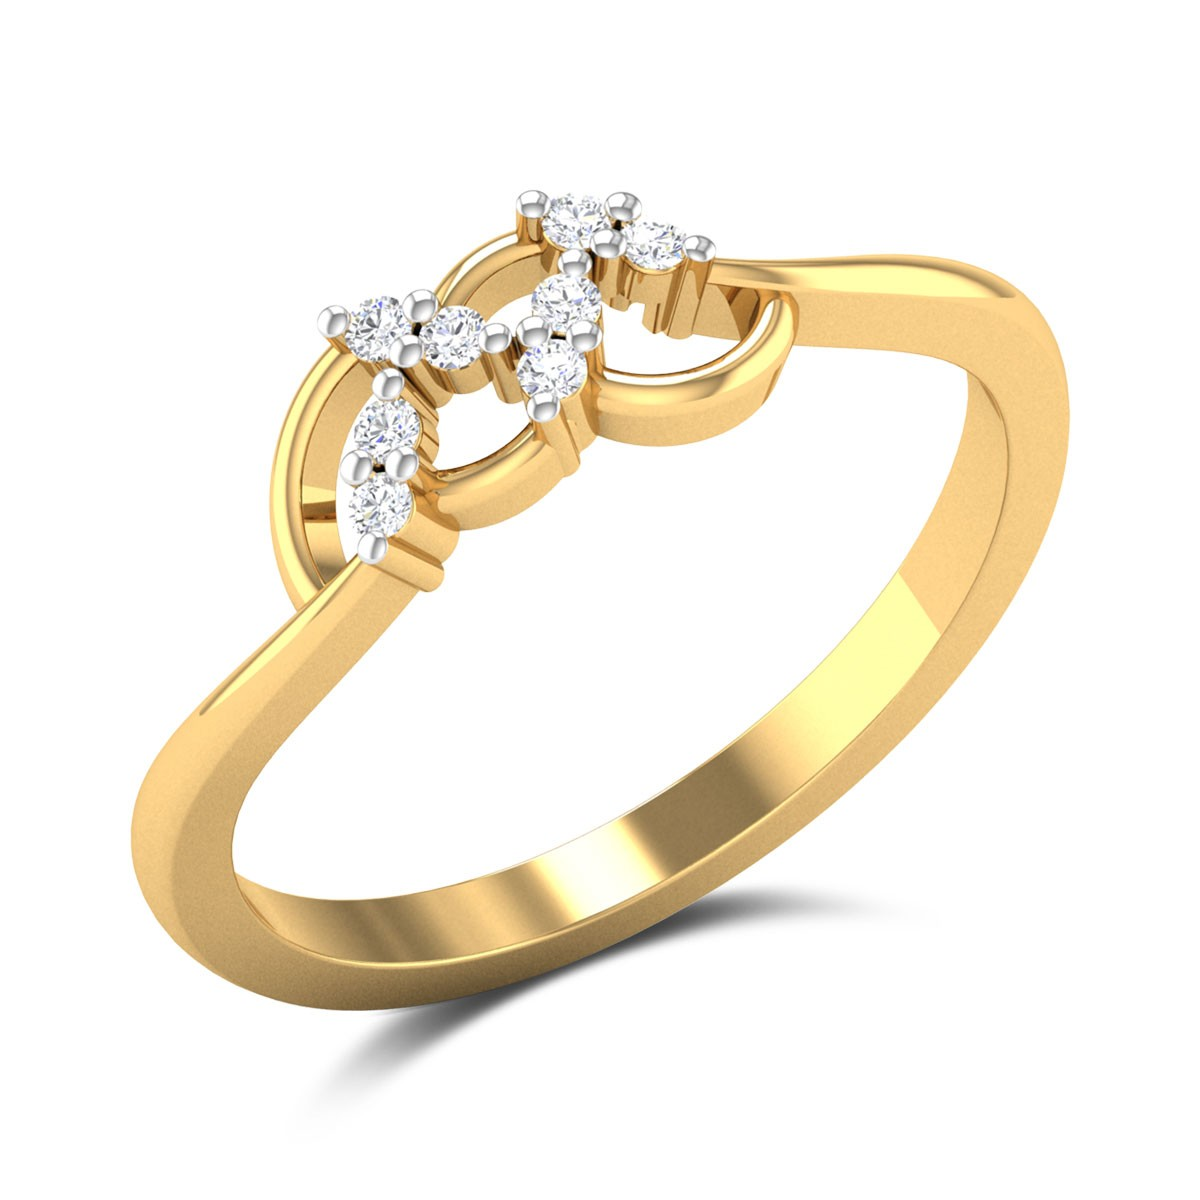 Romilly Diamond Ring